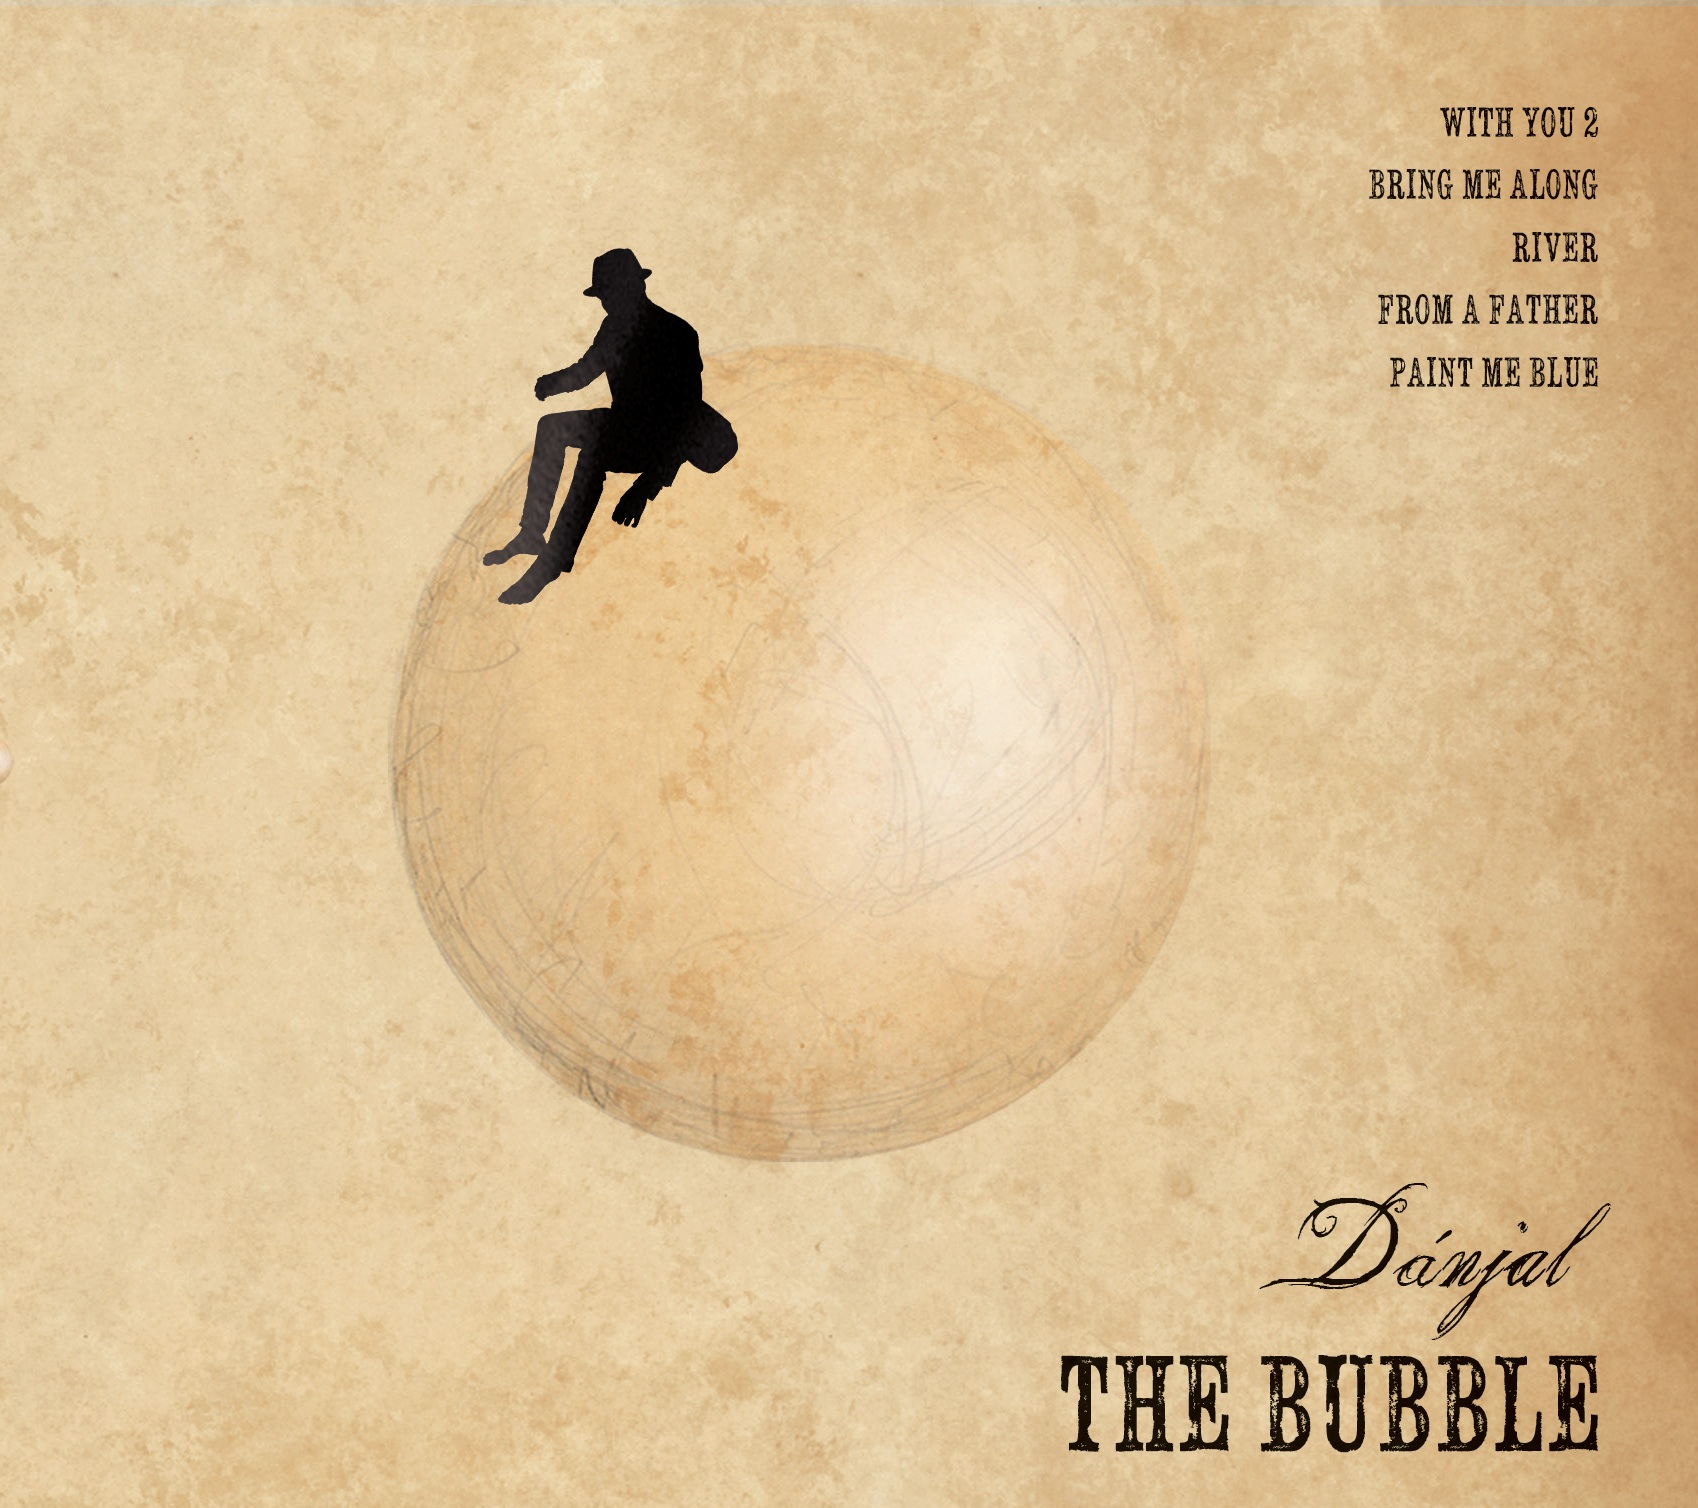 THE BUBBLE - Dánjal